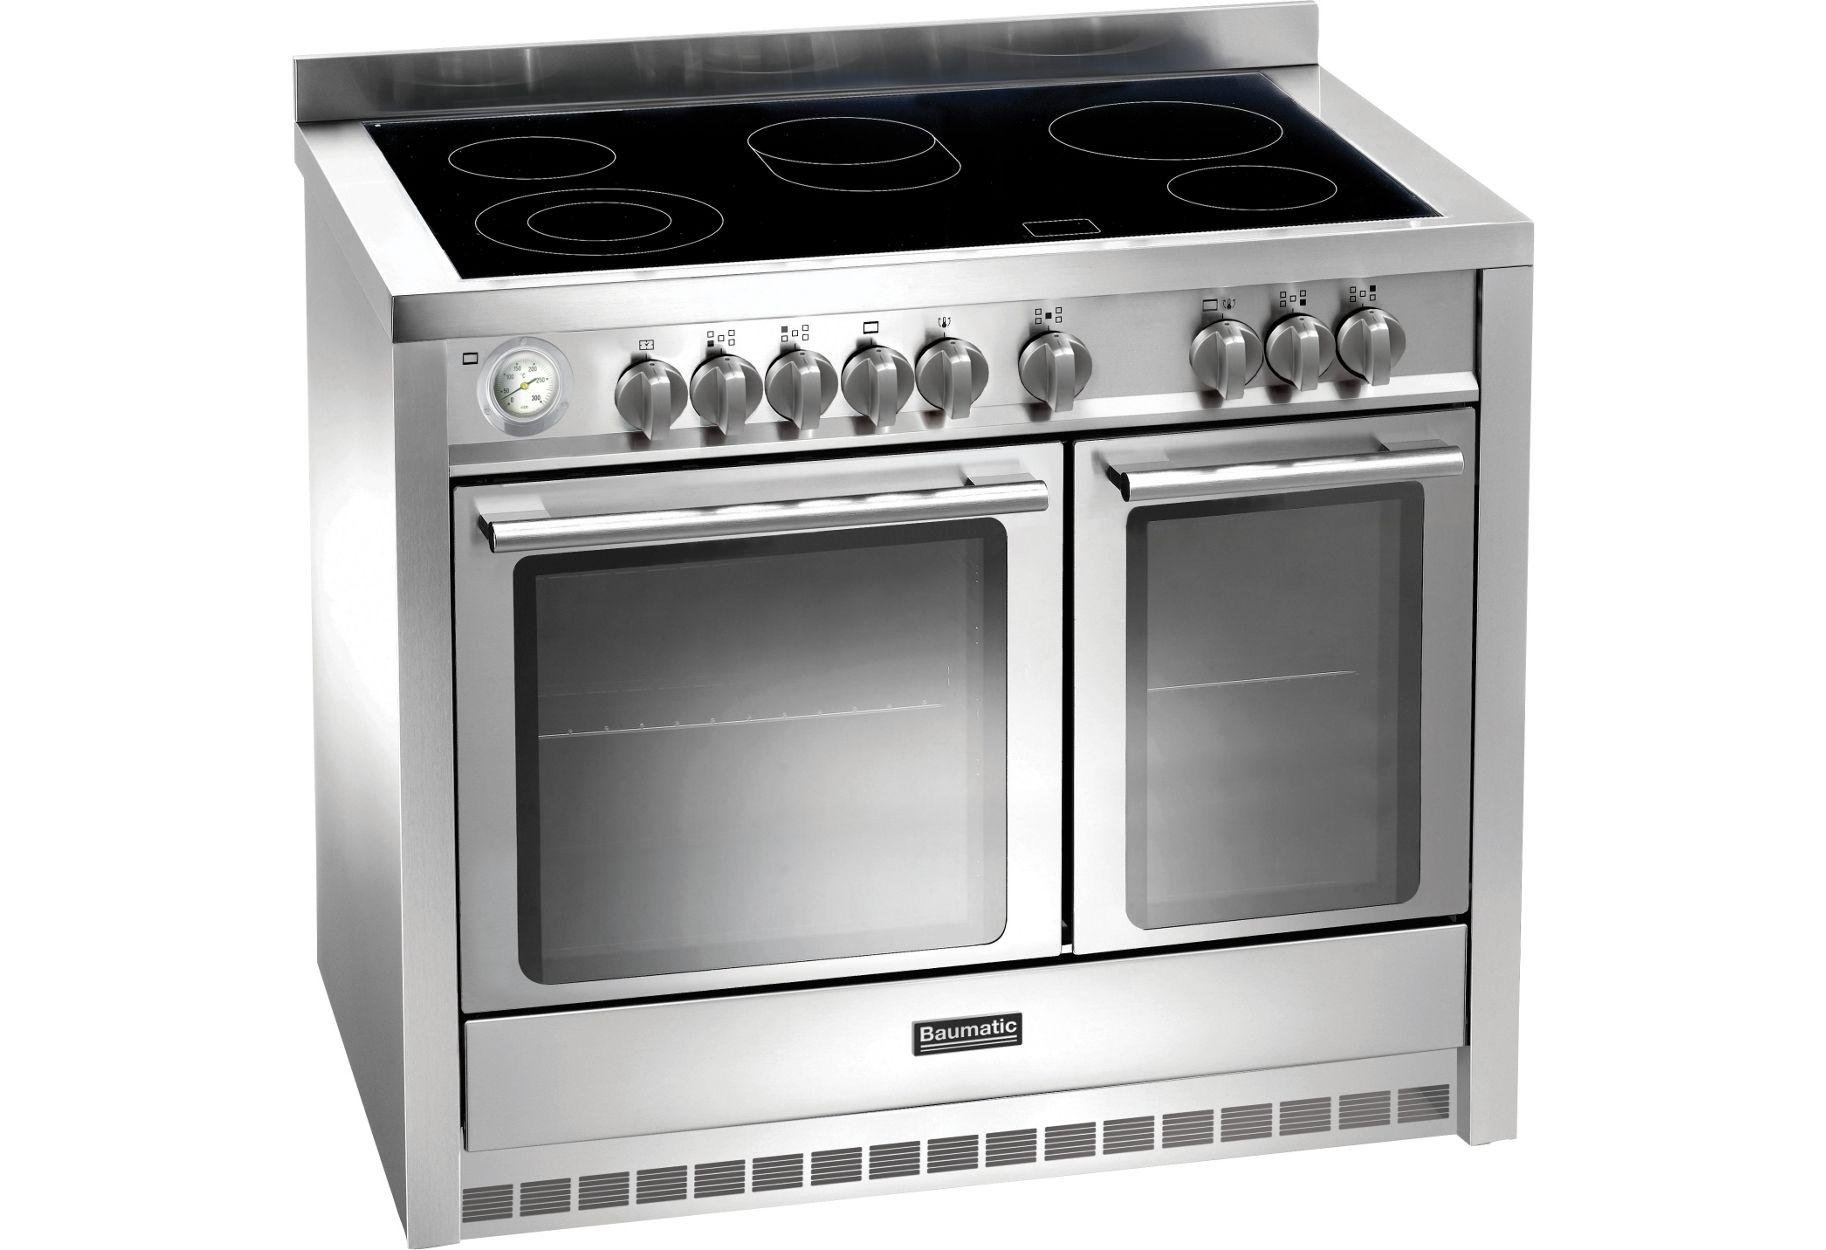 Image of Baumatic BCE1025 Electric Range Cooker - Stainless Steel.